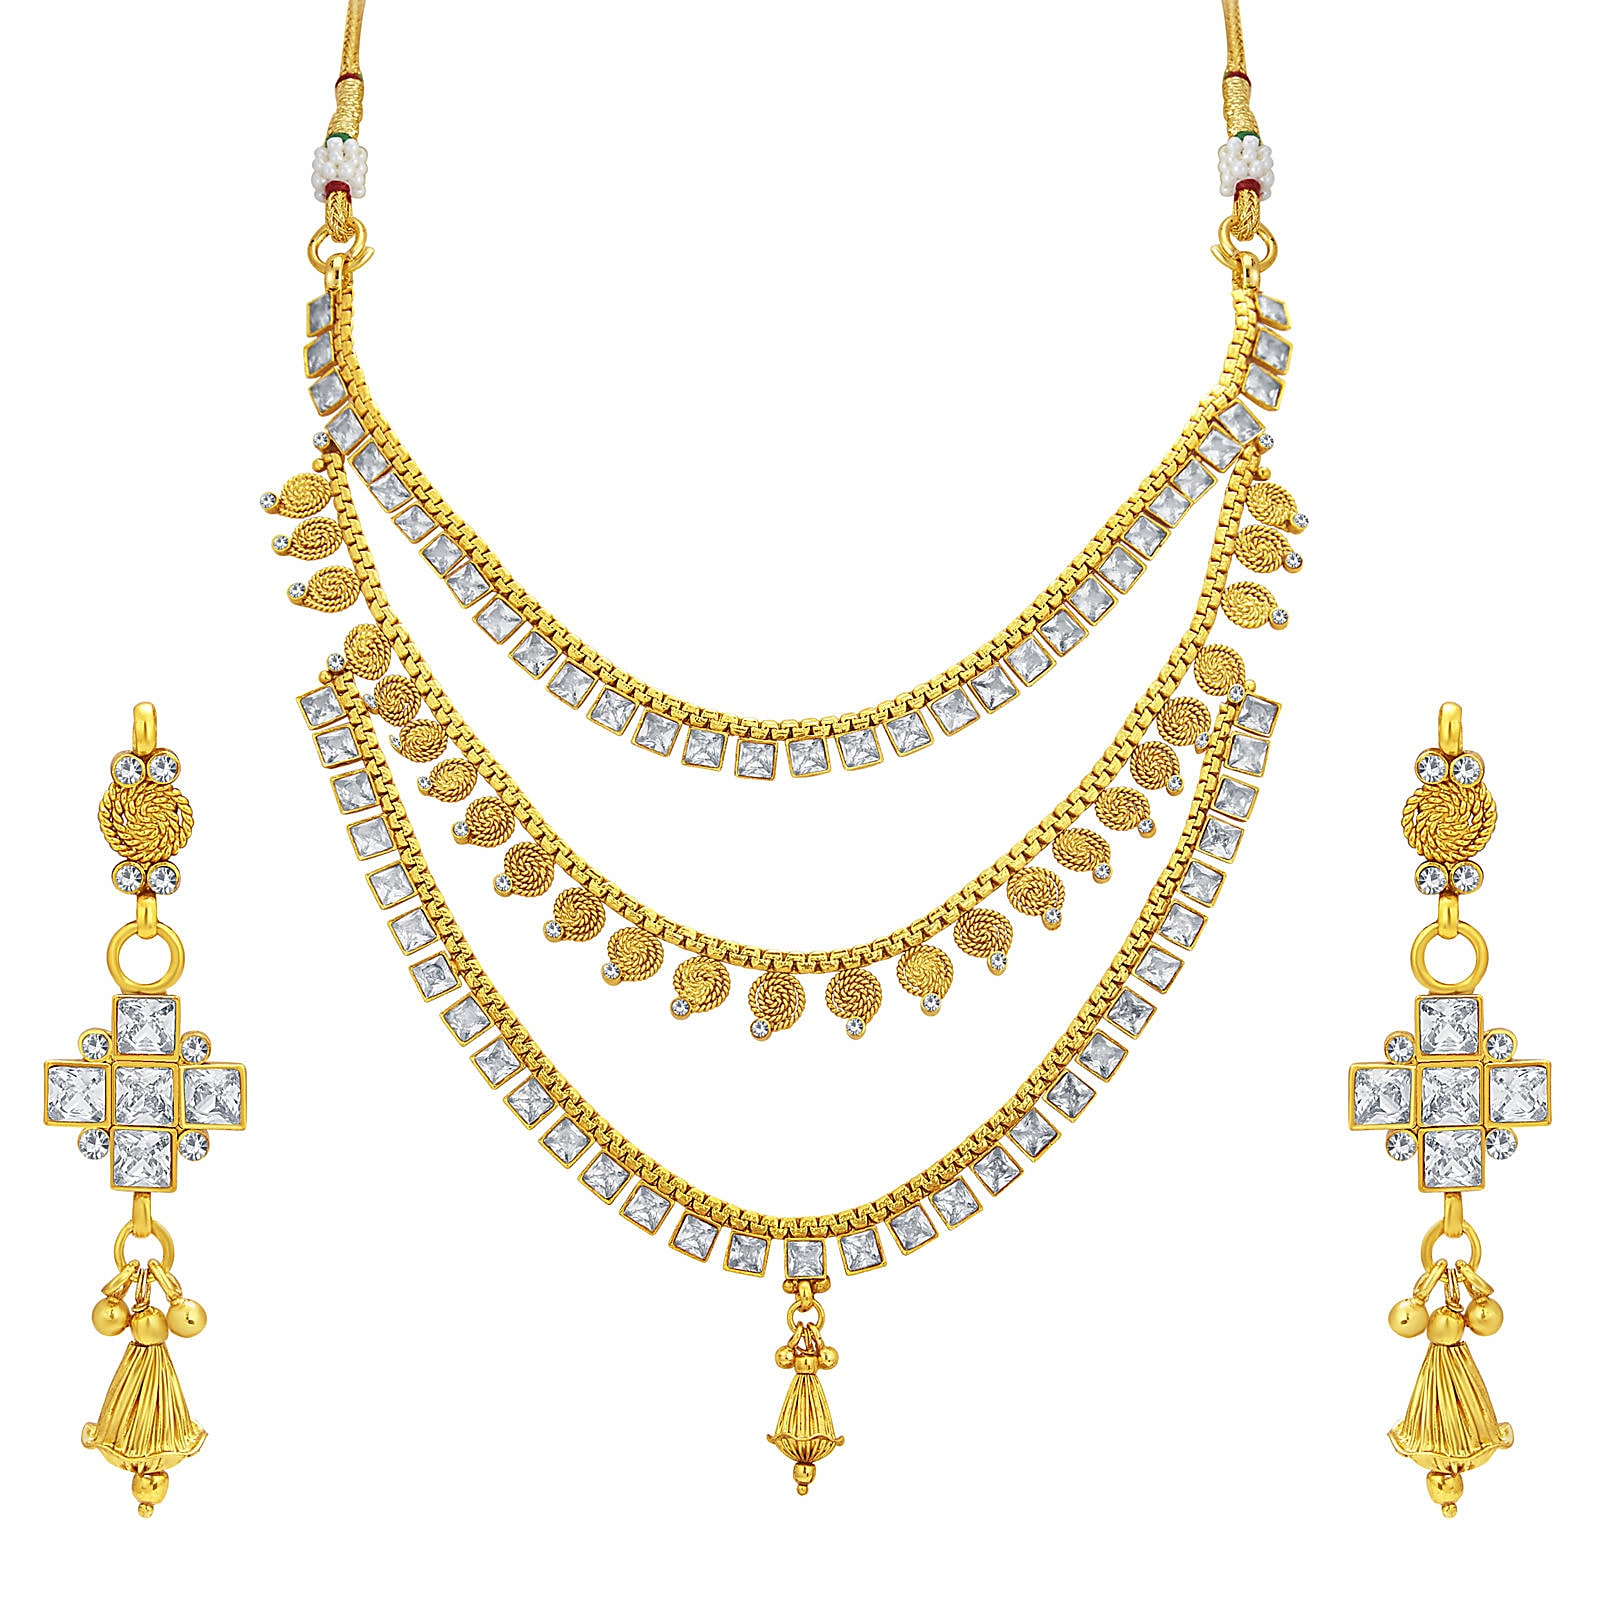 9729d21c6 Buy Sukkhi Luxurious Three String Jalebi Gold Plated American Diamond  Necklace Set For Women online. ✯ 100% authentic products, ✯ Hand curated,  ...